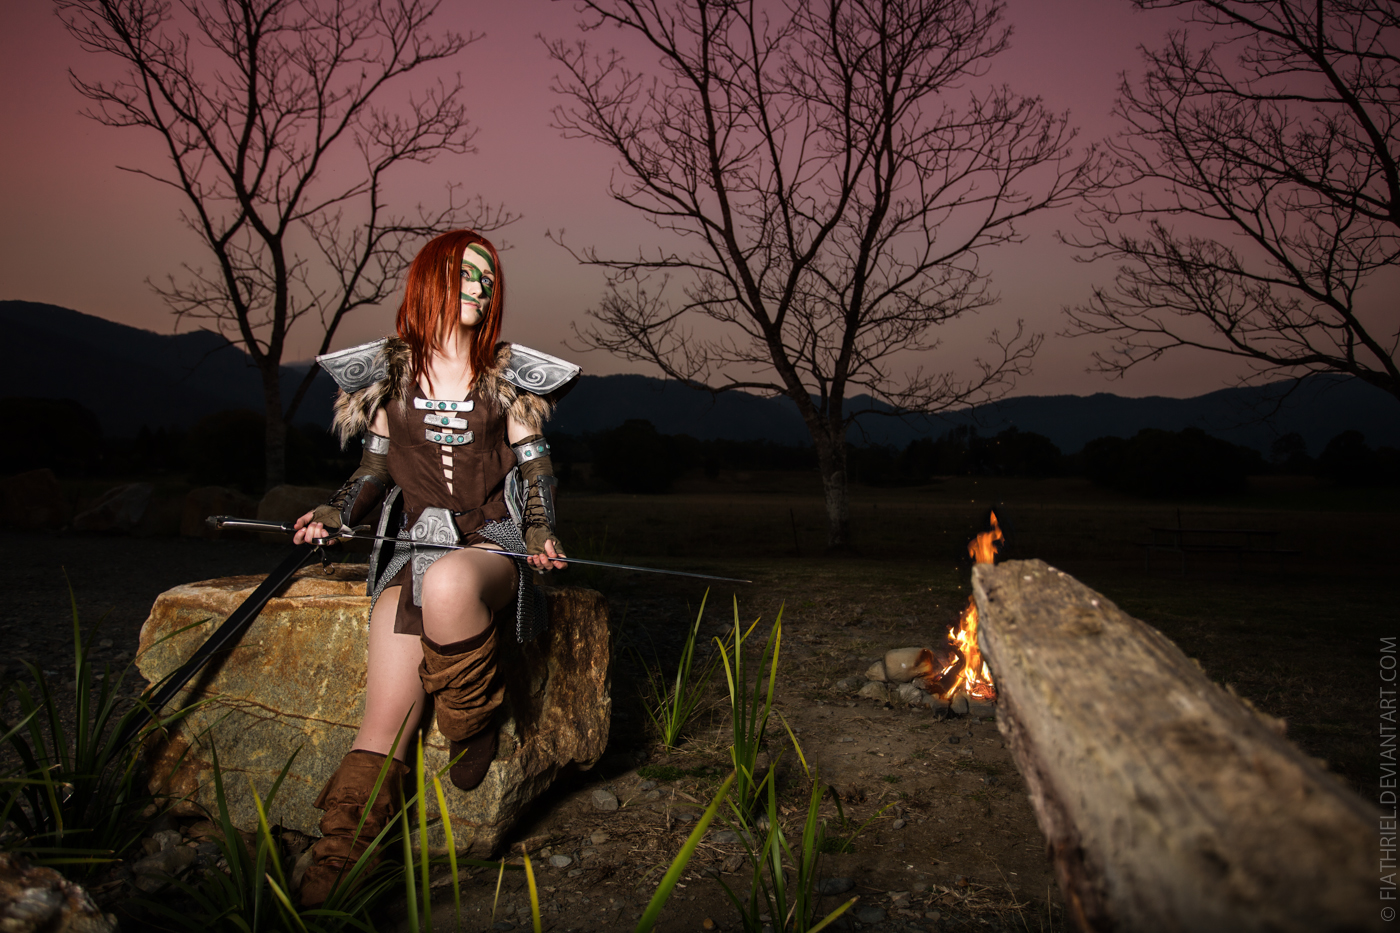 Skyrim - Aela The Huntress III by fiathriel